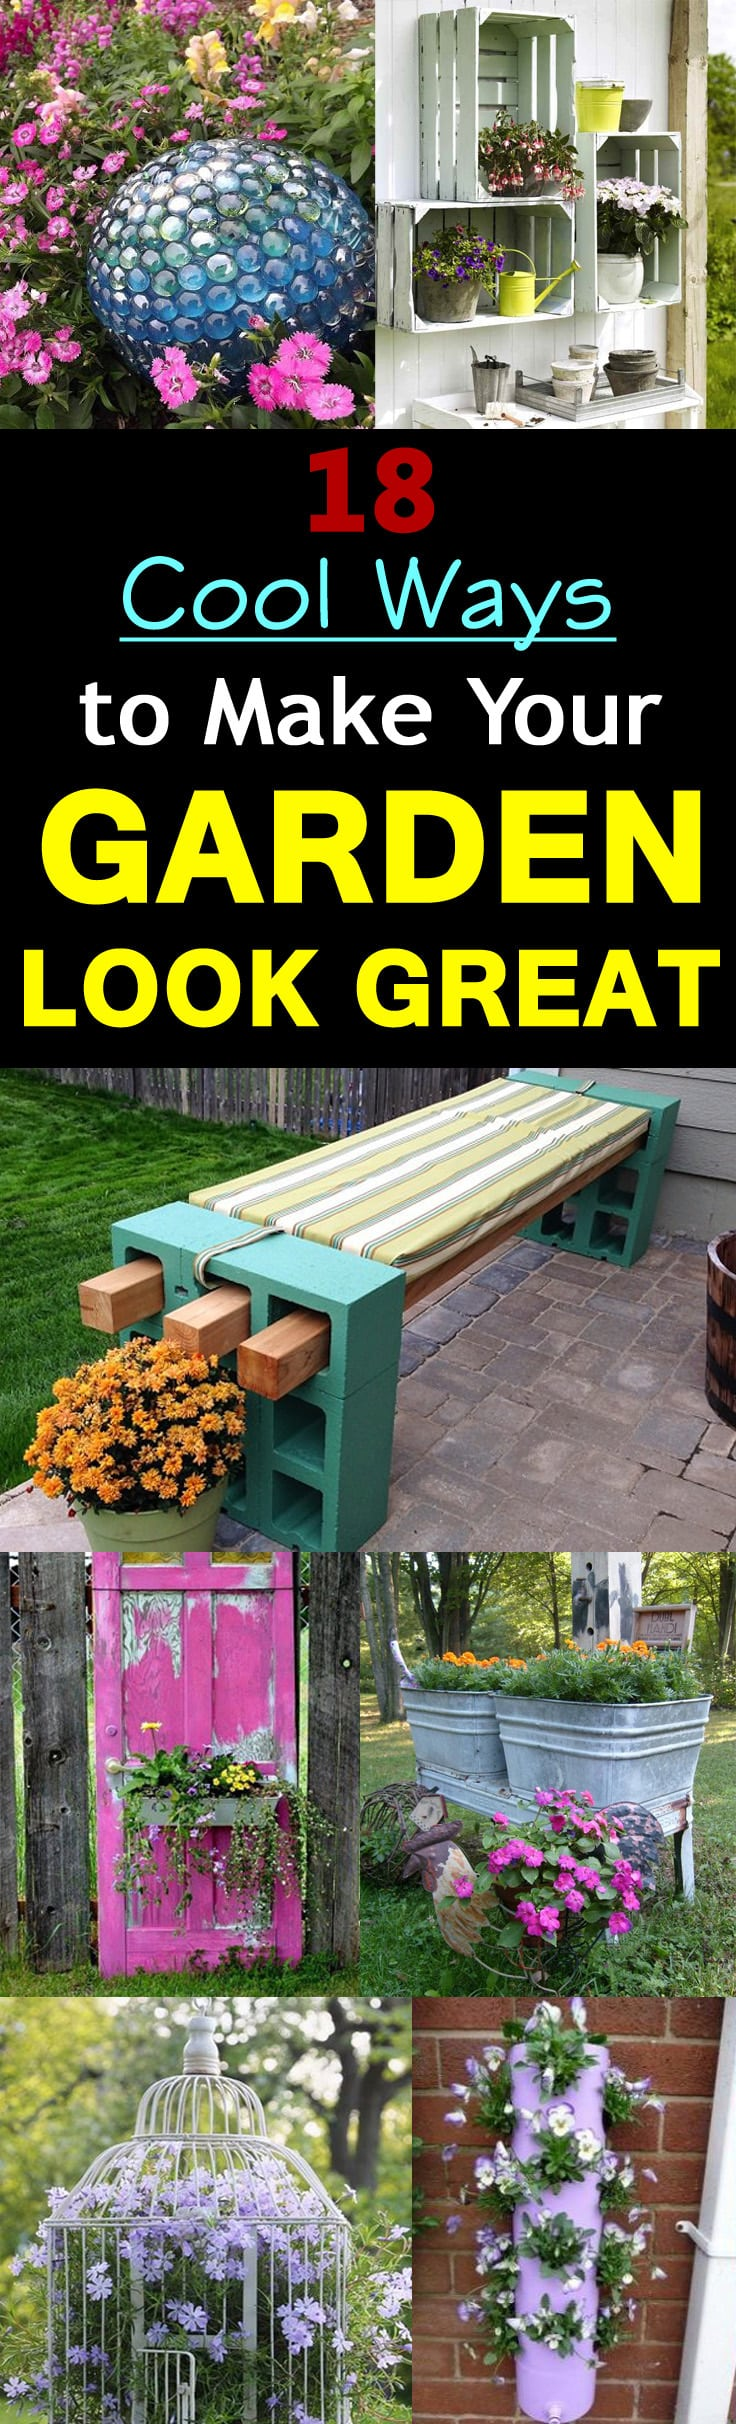 get inspired by these easy fast and cheap ideas to make your garden look great